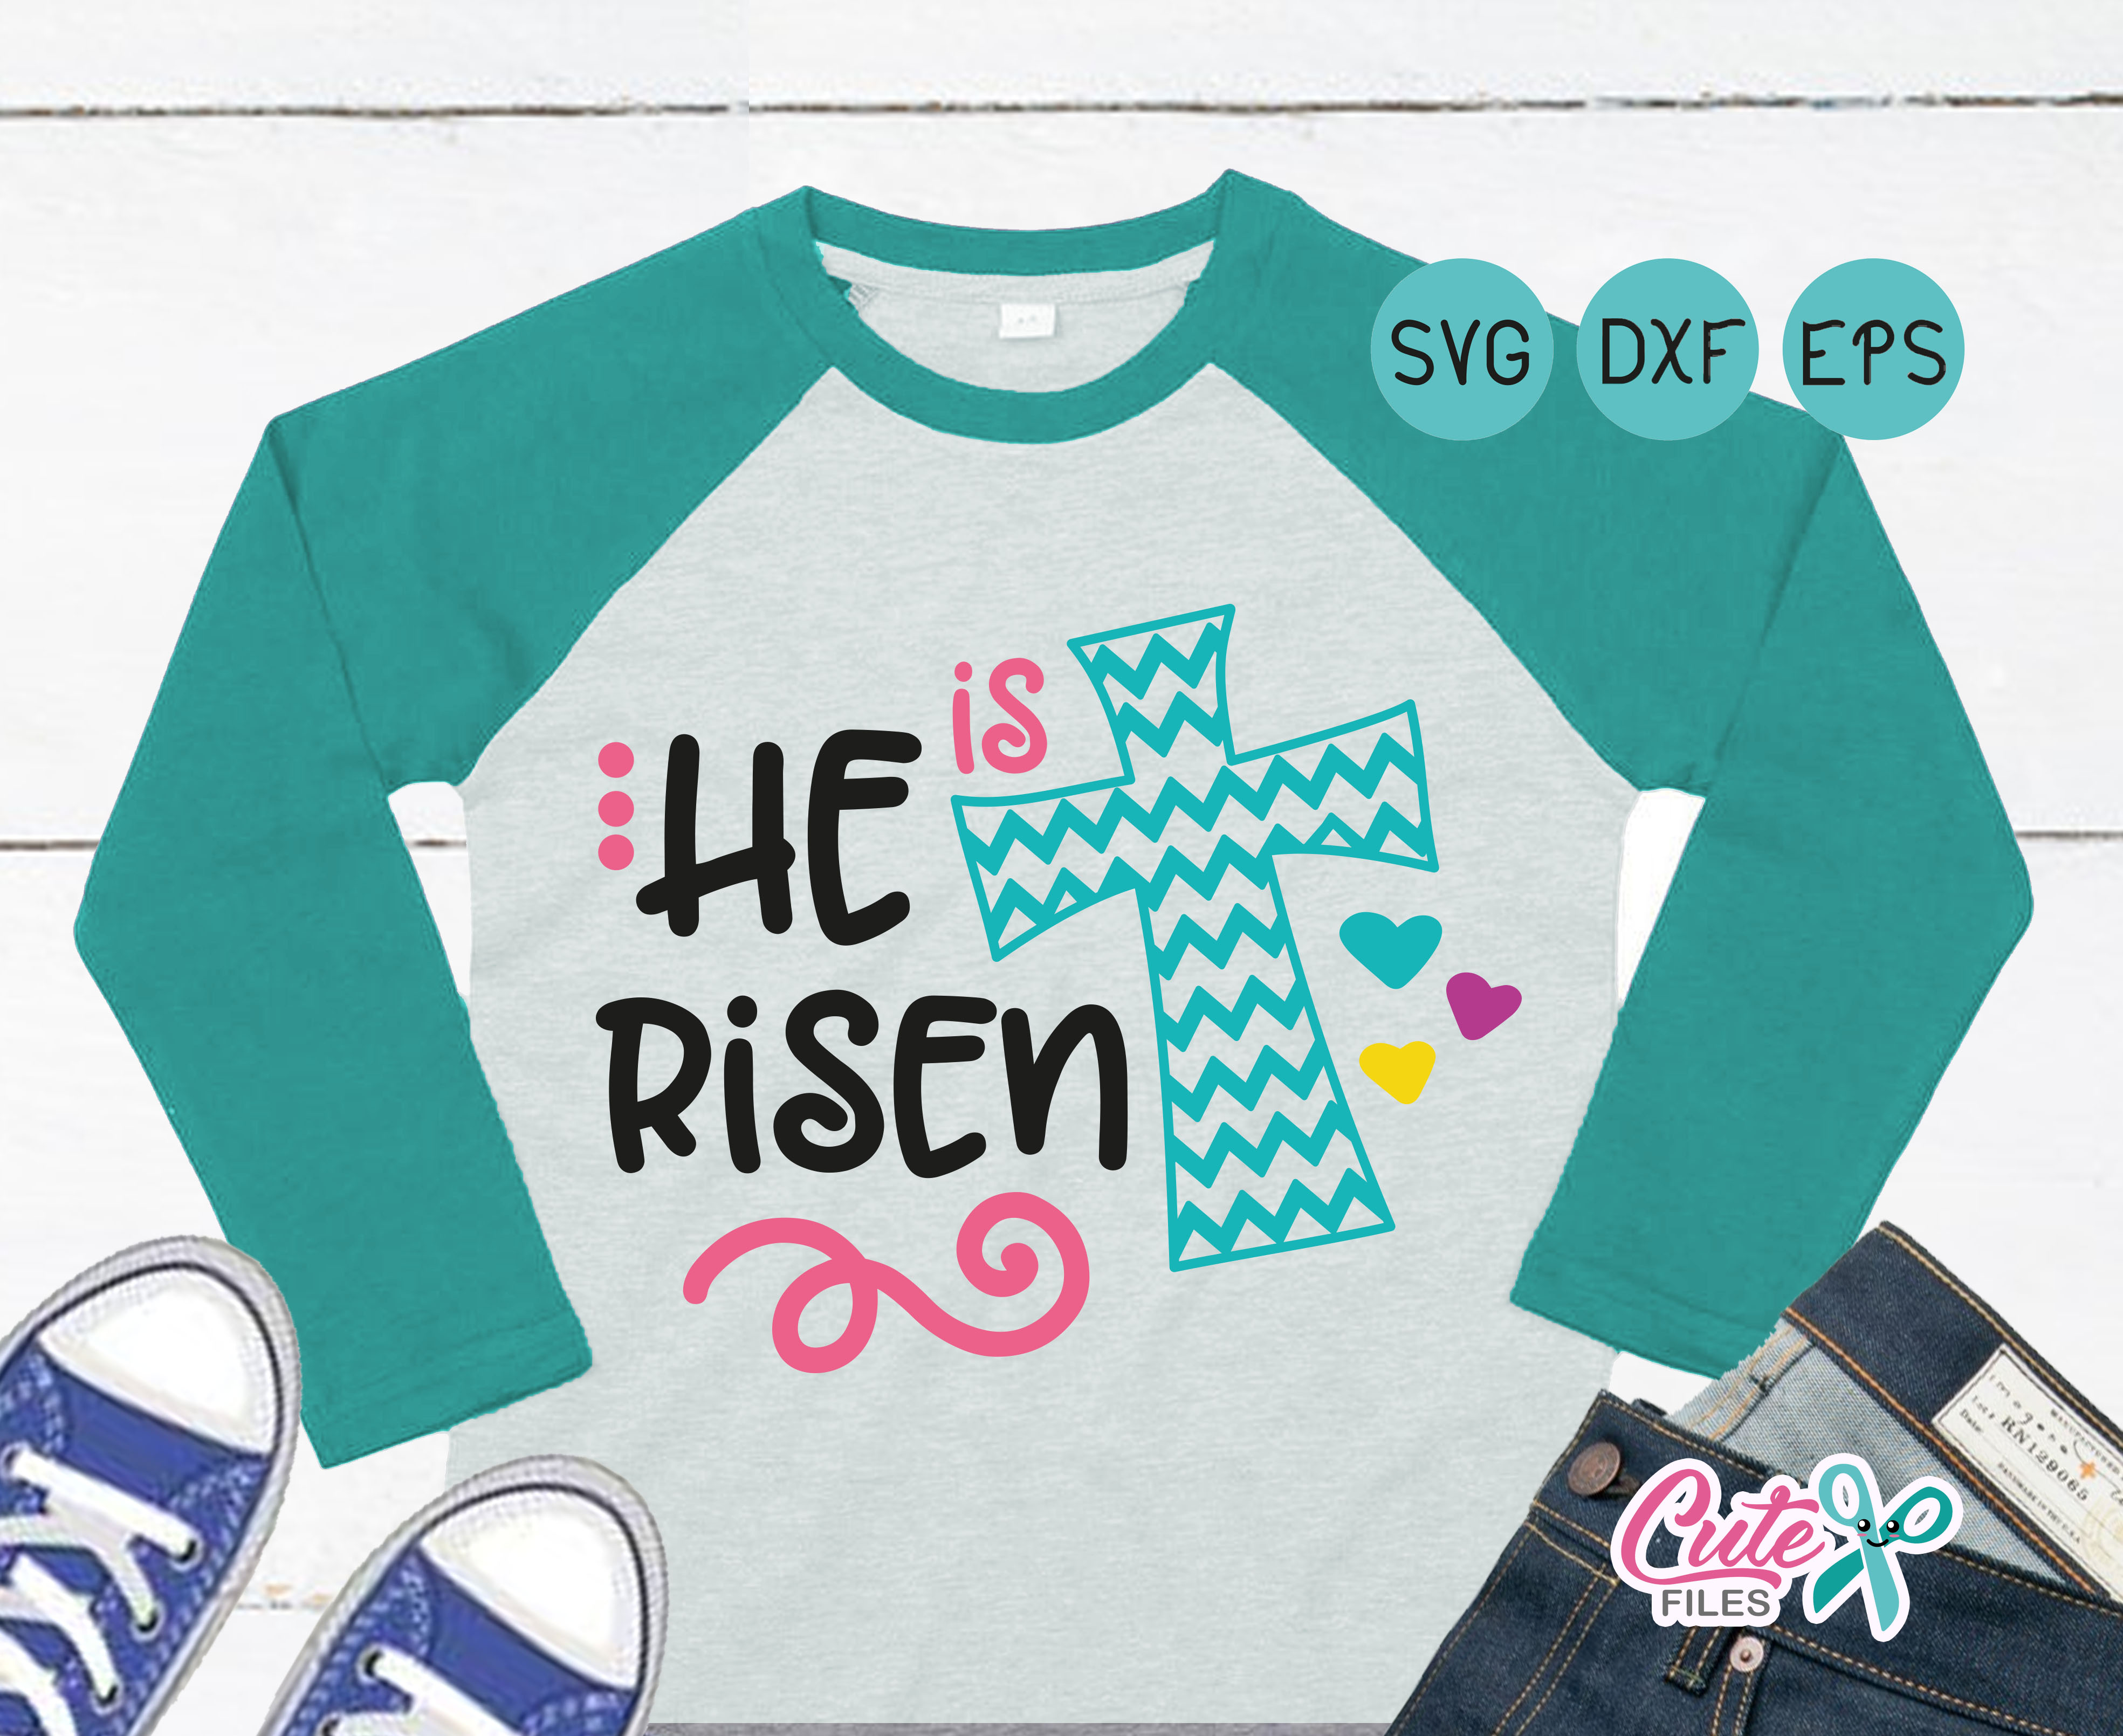 He is Risen Graphic Crafts By Cute files